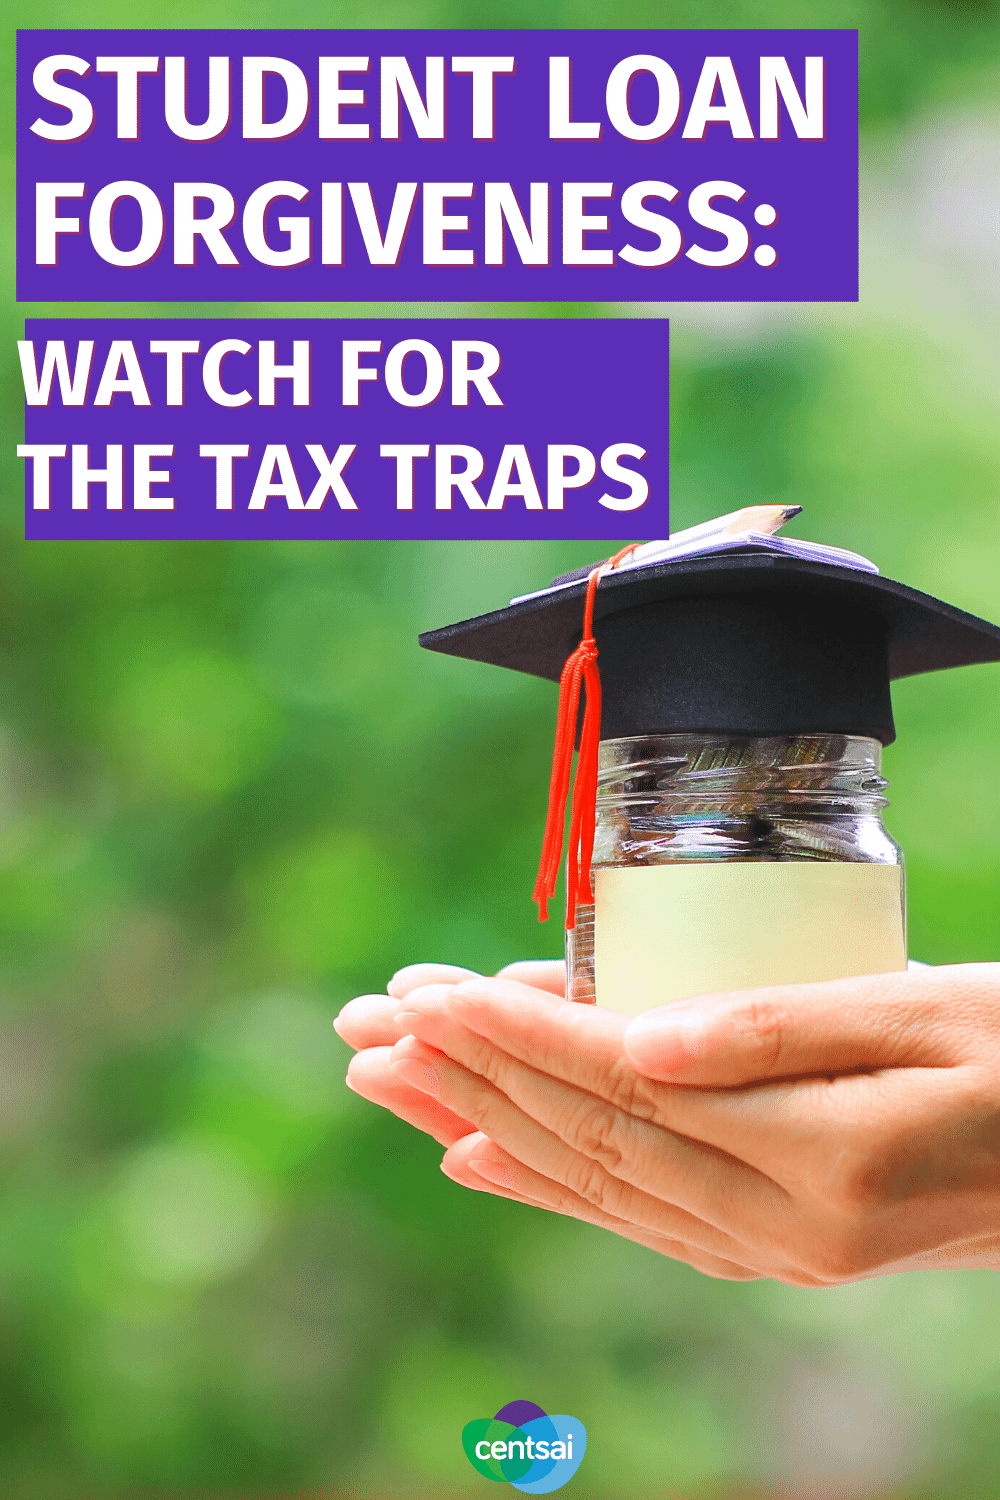 Student Loan Forgiveness Watch for the Tax Traps